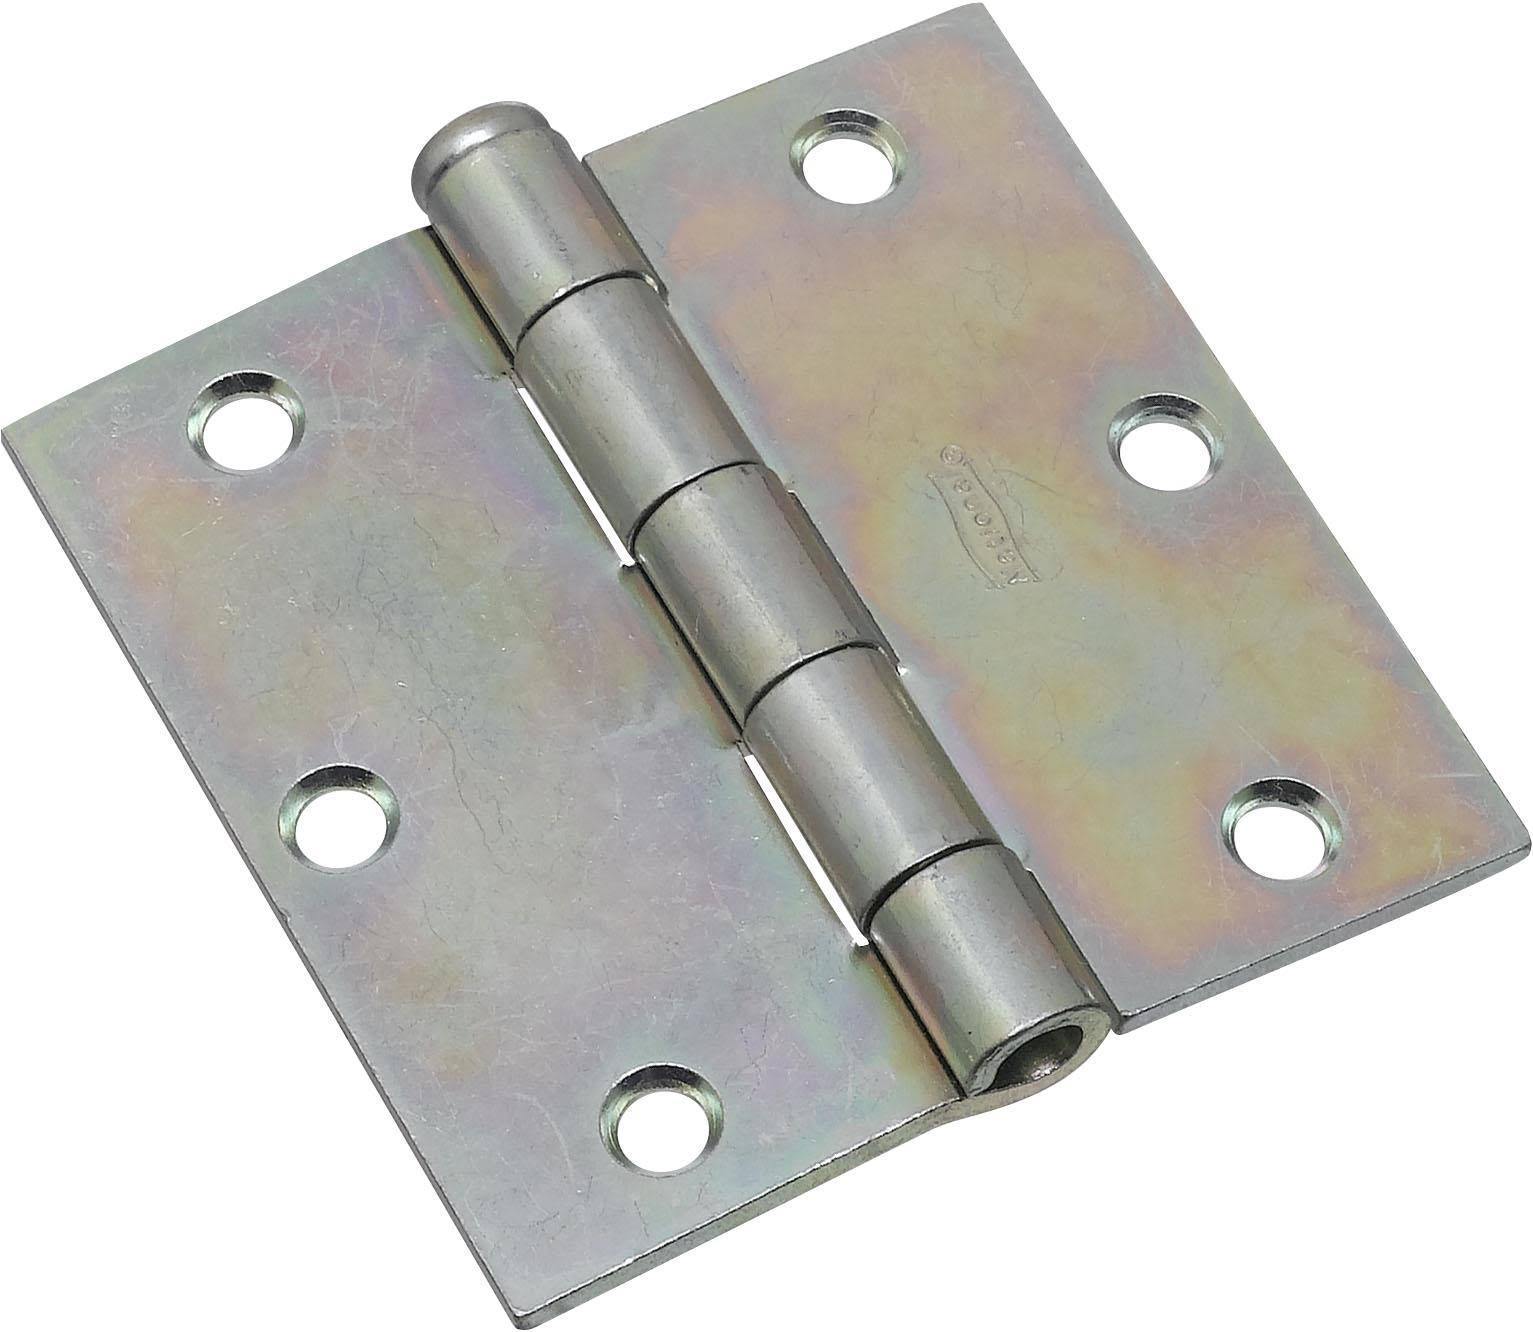 National Hardware Removable Pin Broad Hinge - Zinc Plated, 3-1/2""